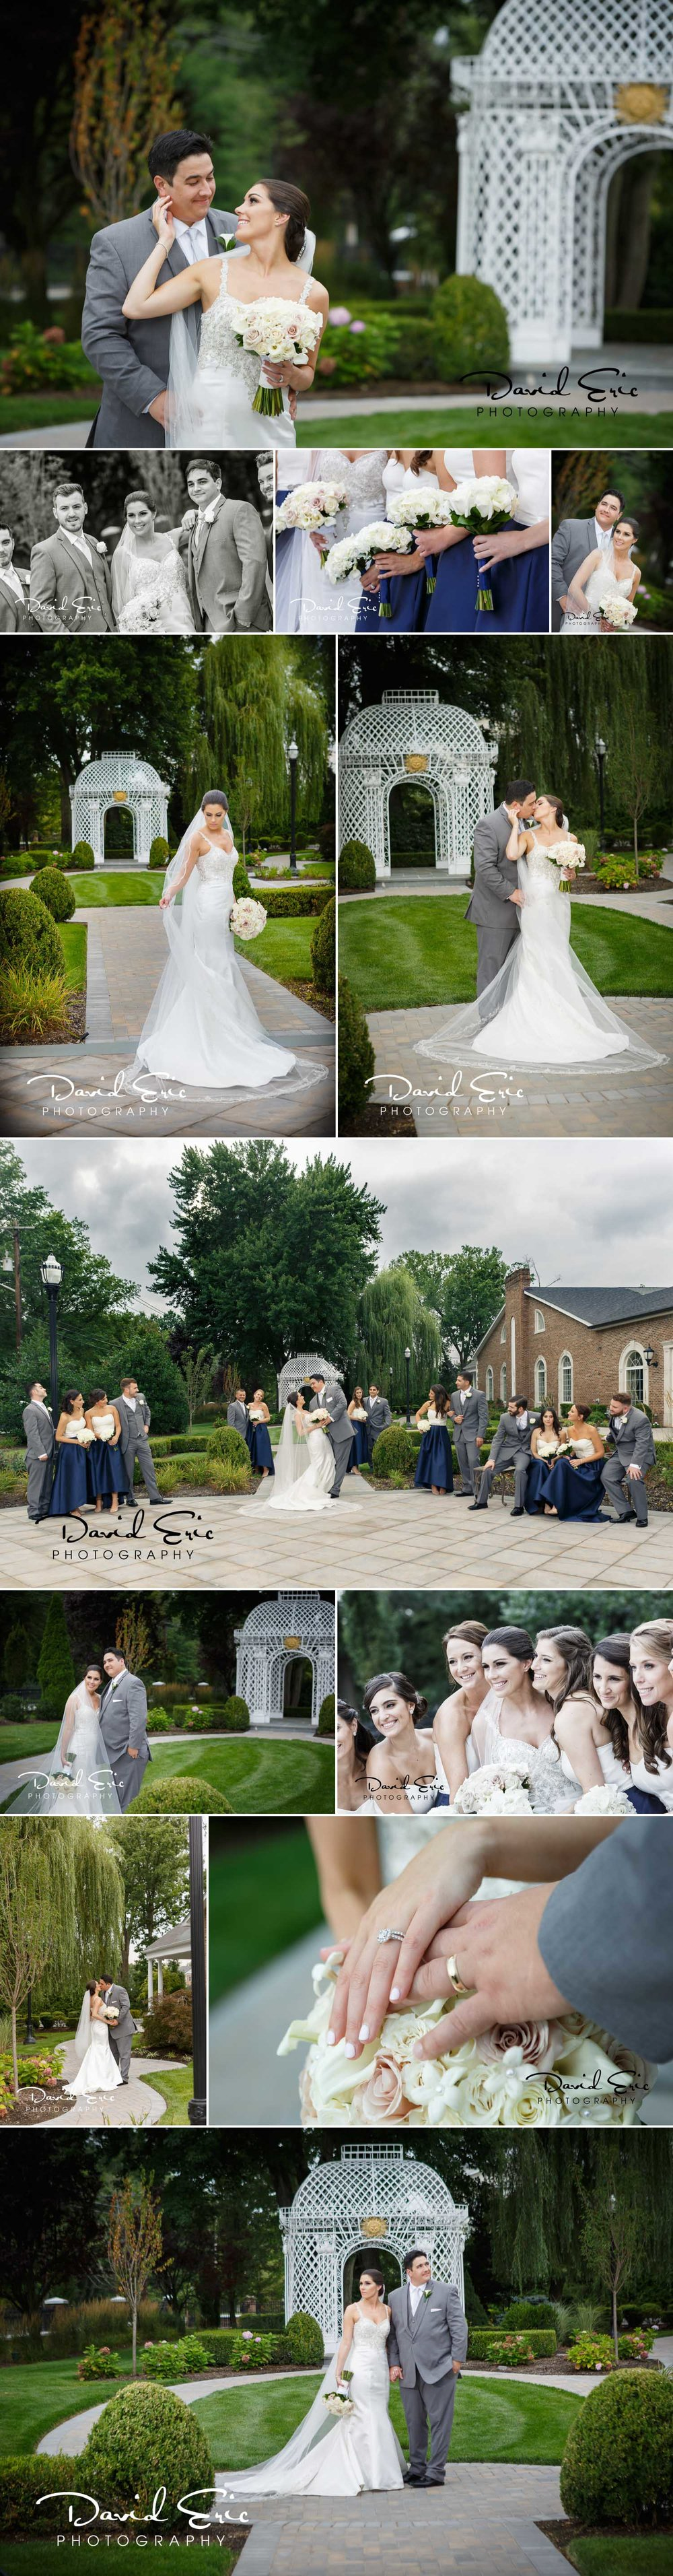 bergen_county_new_jersey_rockleigh_country_club_wedding_0036.jpg